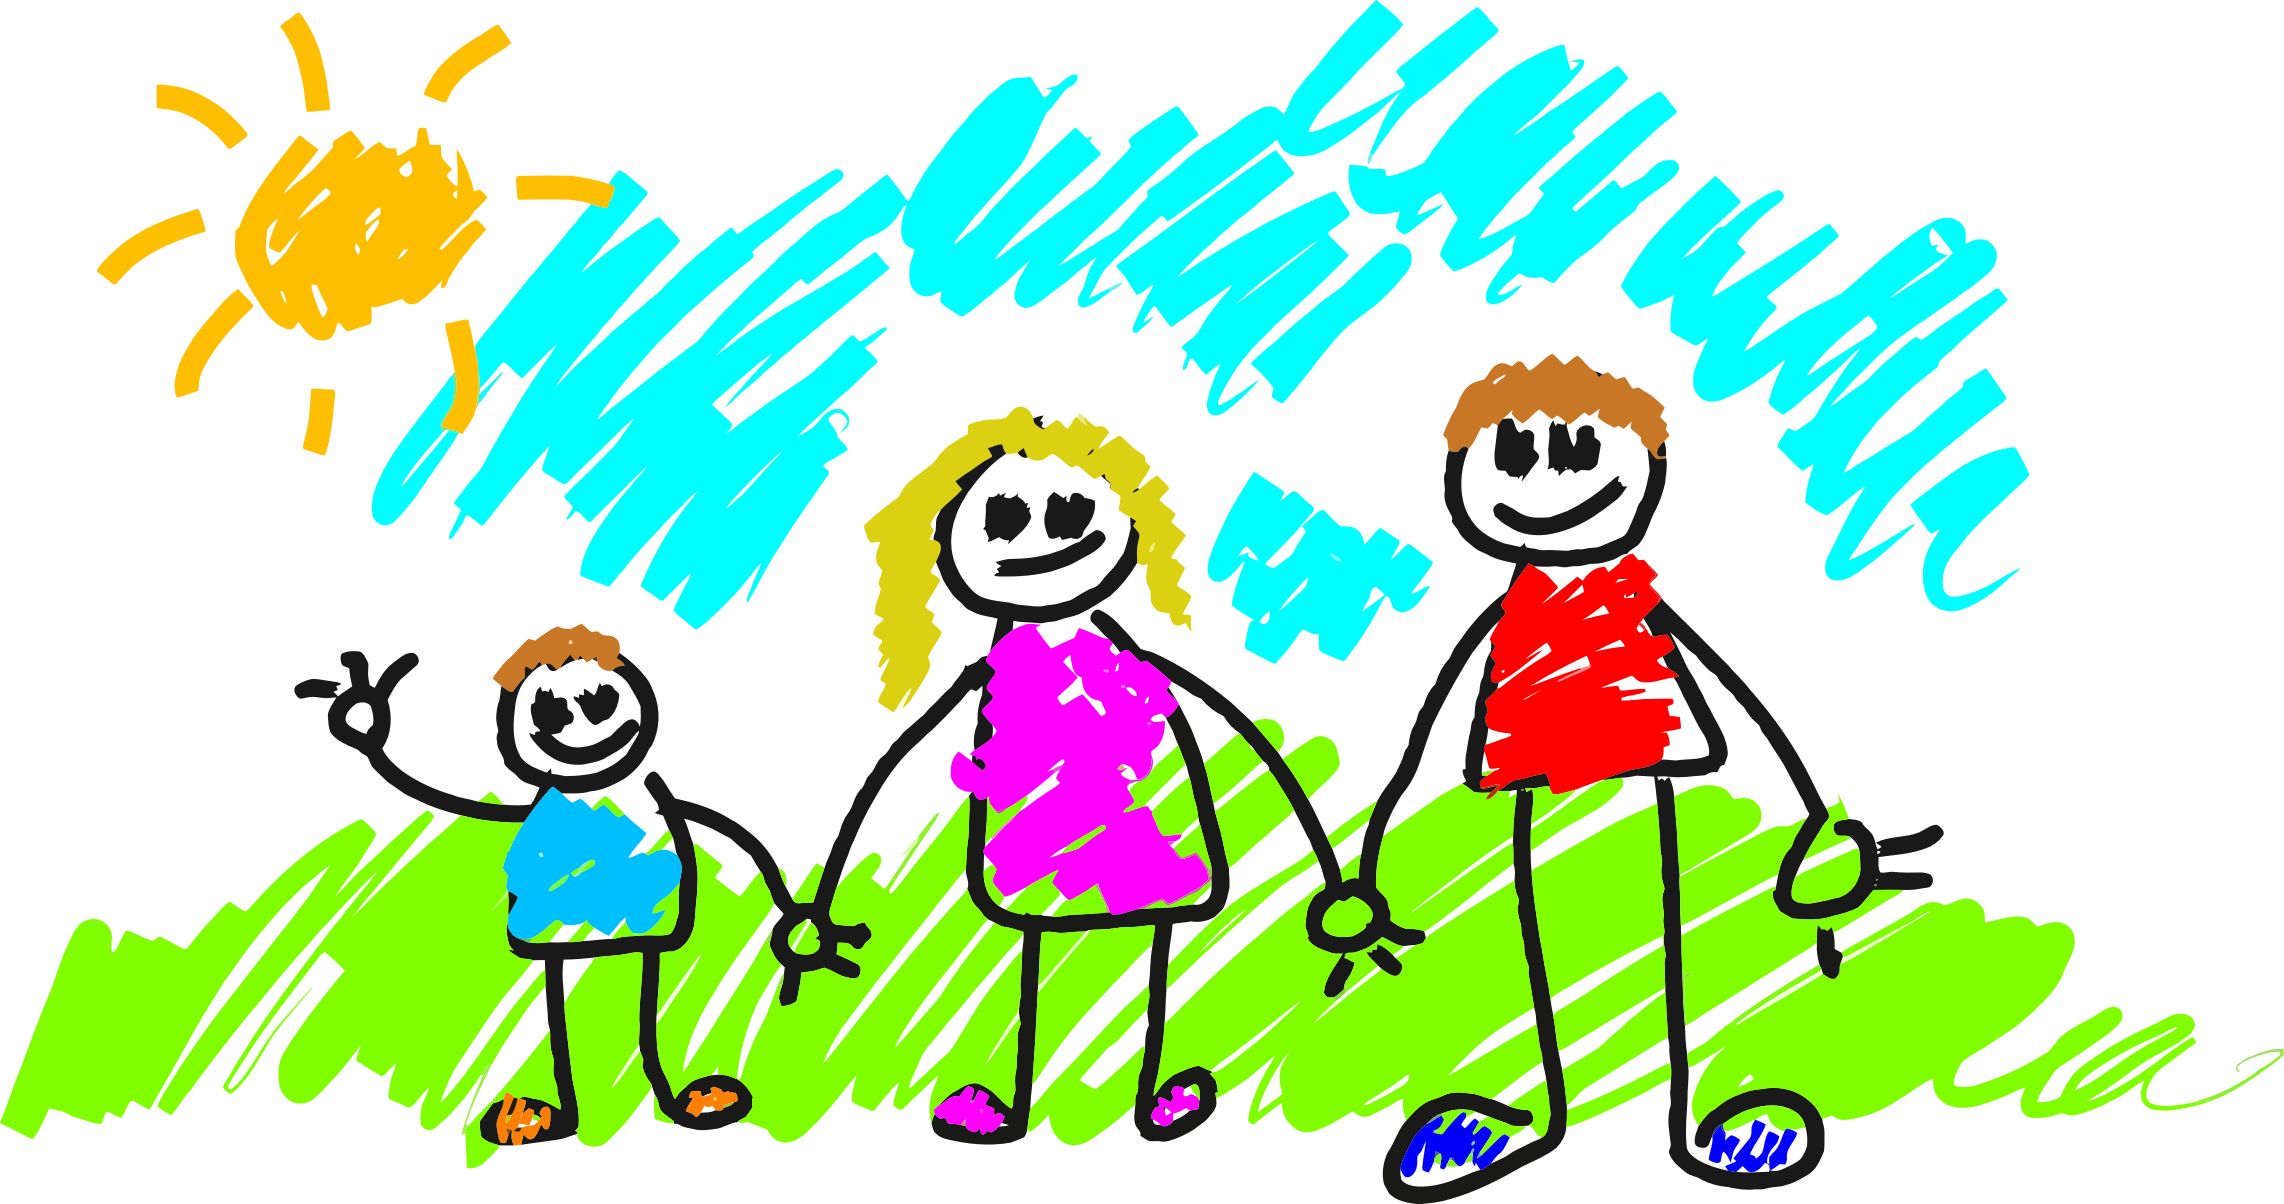 Stick Figure Family by GDJ